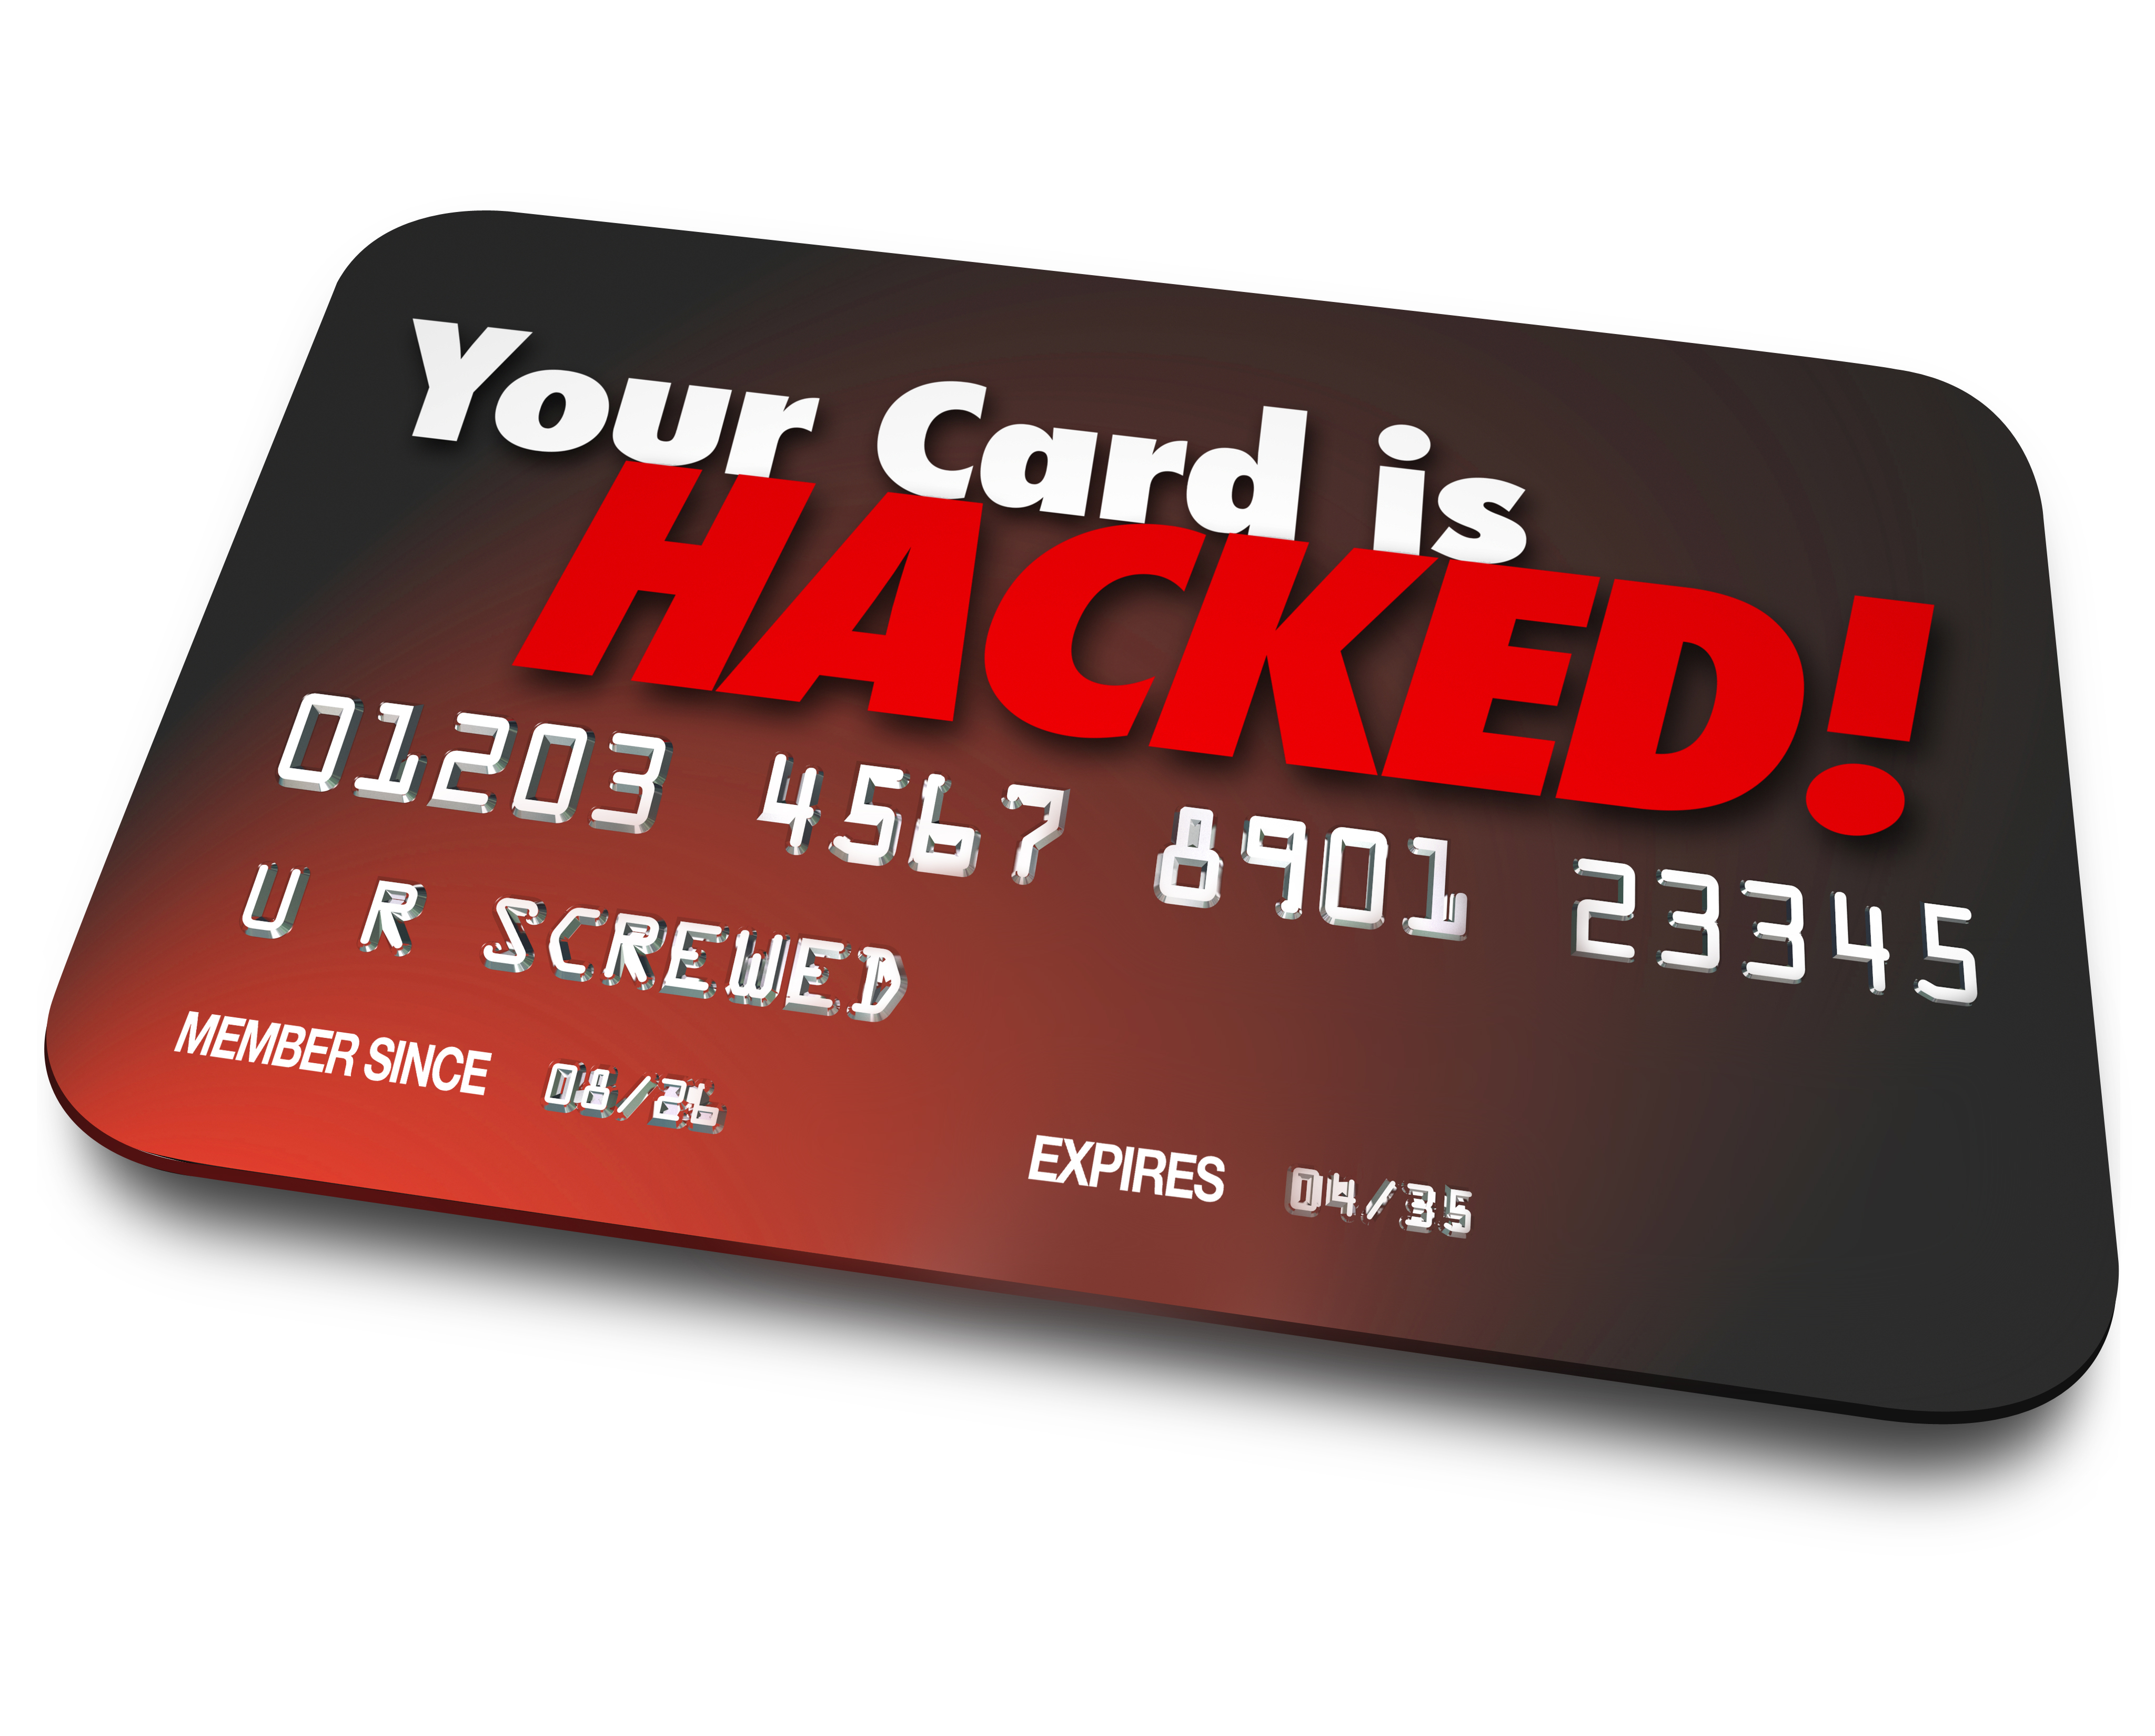 EXPERTS OFFER ADVICE ON HOW TO AVOID BEING SCAMMED